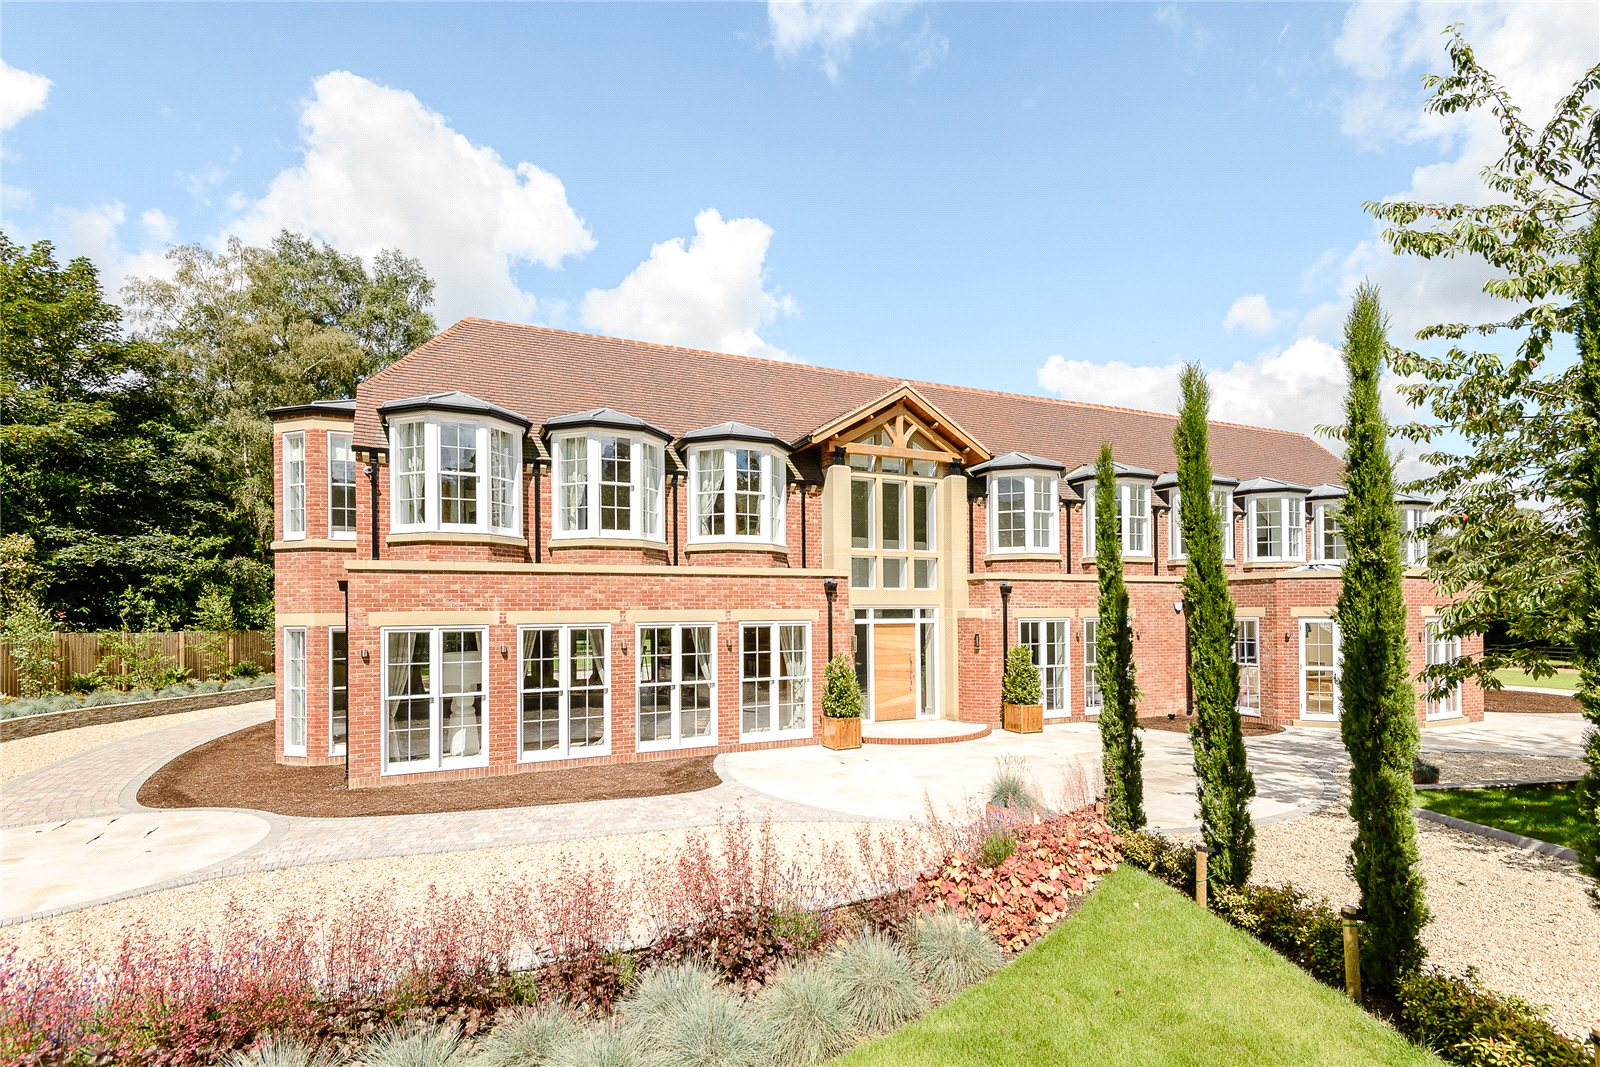 Single Family Home for Sale at Fulmer Common Road, Fulmer/Iver, Buckinghamshire, SL0 Buckinghamshire, England